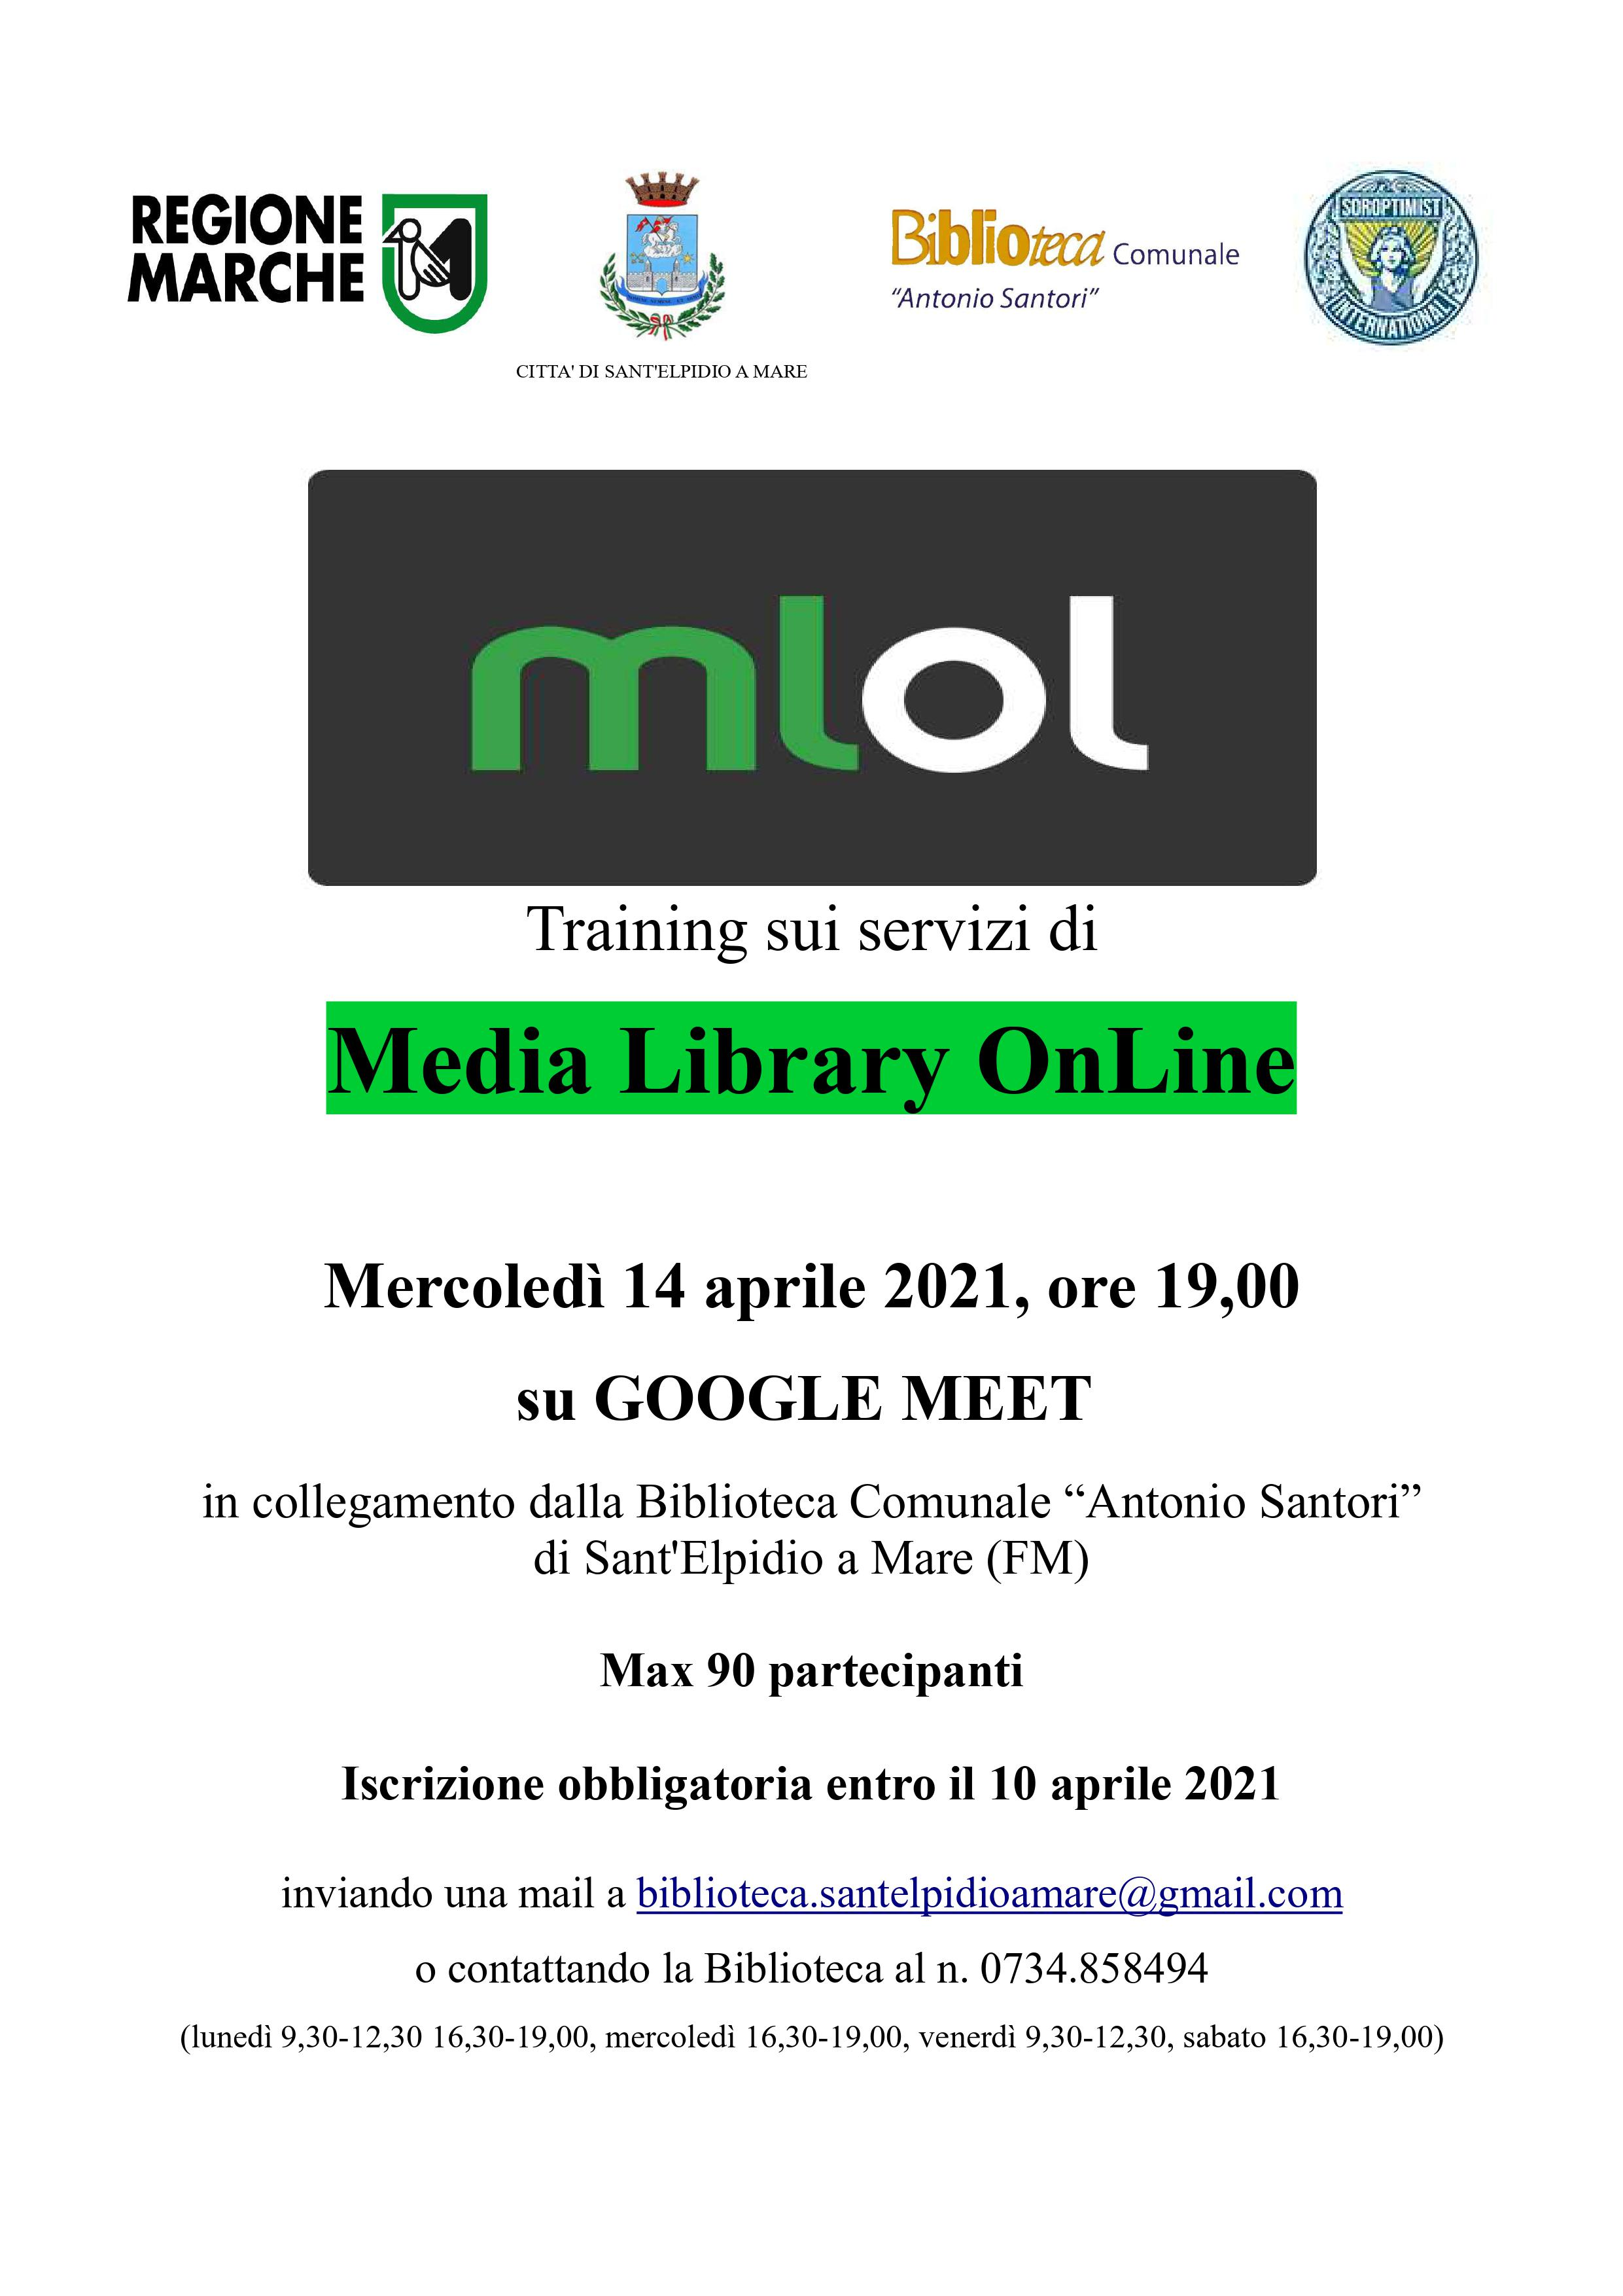 MLOL (Media Library OnLine): TRAINING SUI SERVIZI